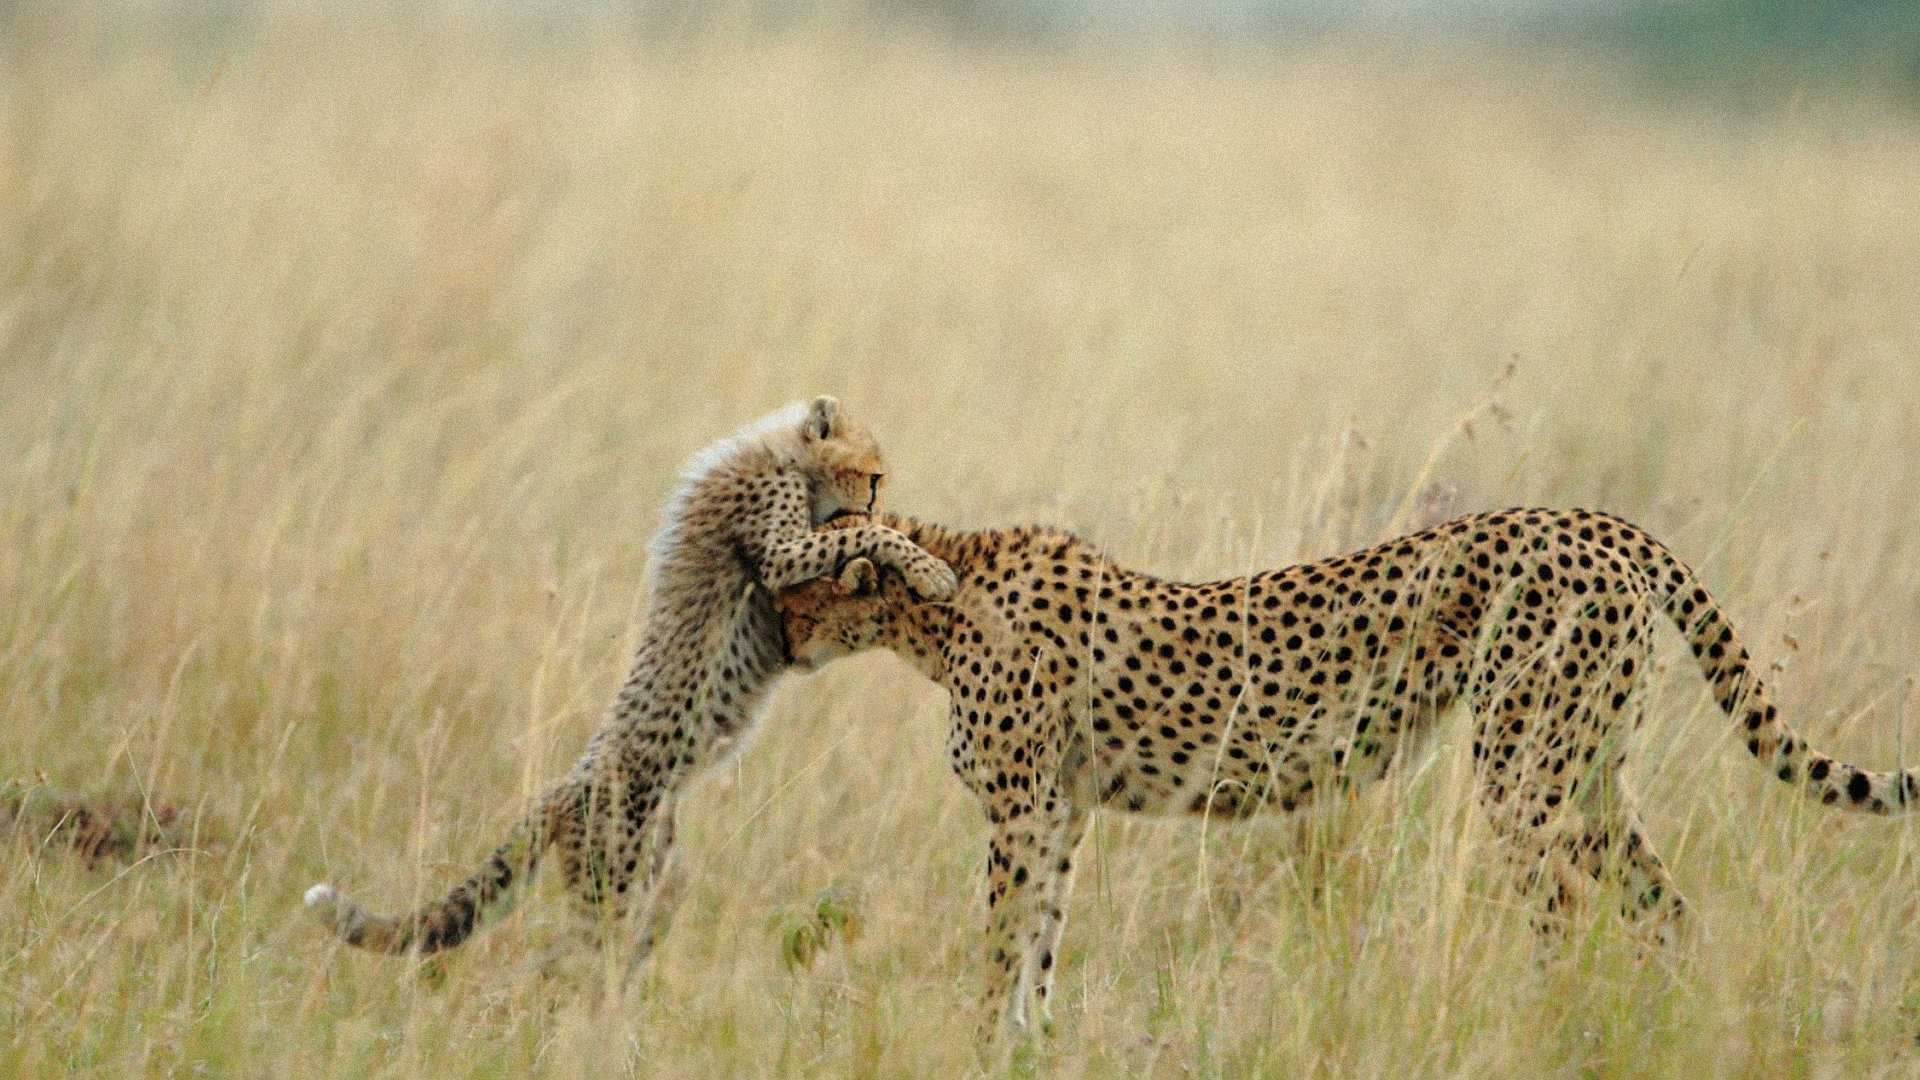 Free Cheetah high quality wallpaper ID:161787 for full hd desktop